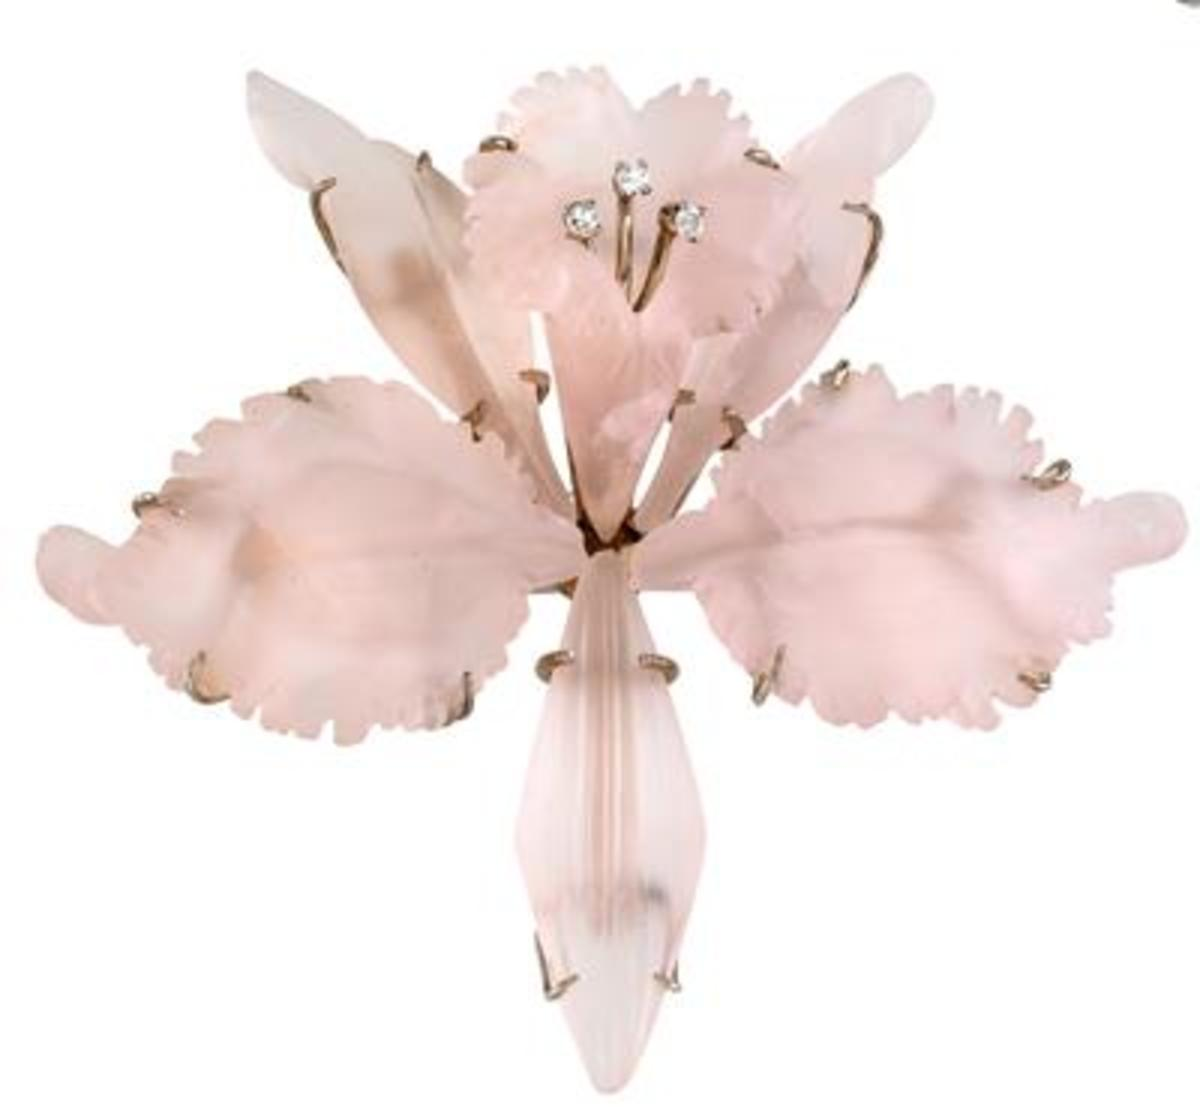 This vintage rose quartz brooch with white gold and 3 octagonal diamonds sold for 1603 Euros at auction.  No, that's not chump change, but imagine what this piece would have cost with some other gemstone! Photo courtesy of Dorotheum.com